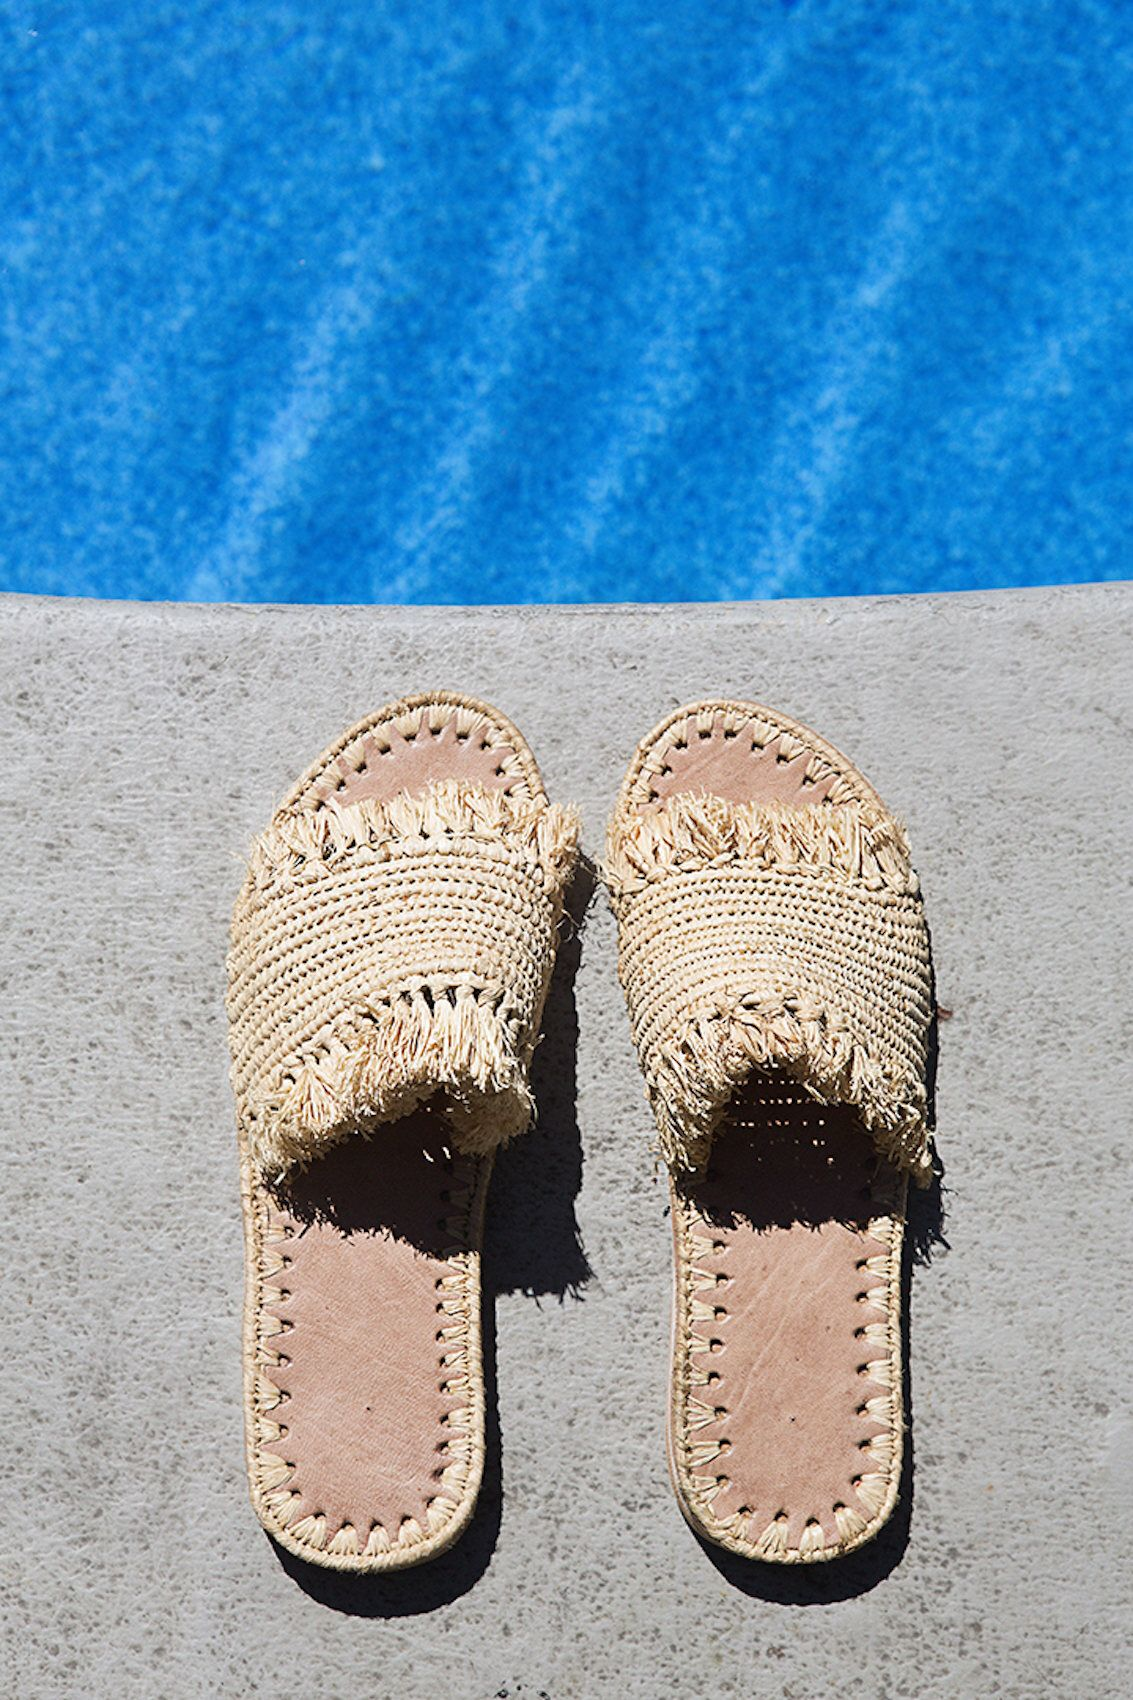 Size 10 Natural Raffia Sandals Moroccan shoes, raffia shoes, womans sandals,womans shoes,red shoes, handmade shoes,raffia fringe